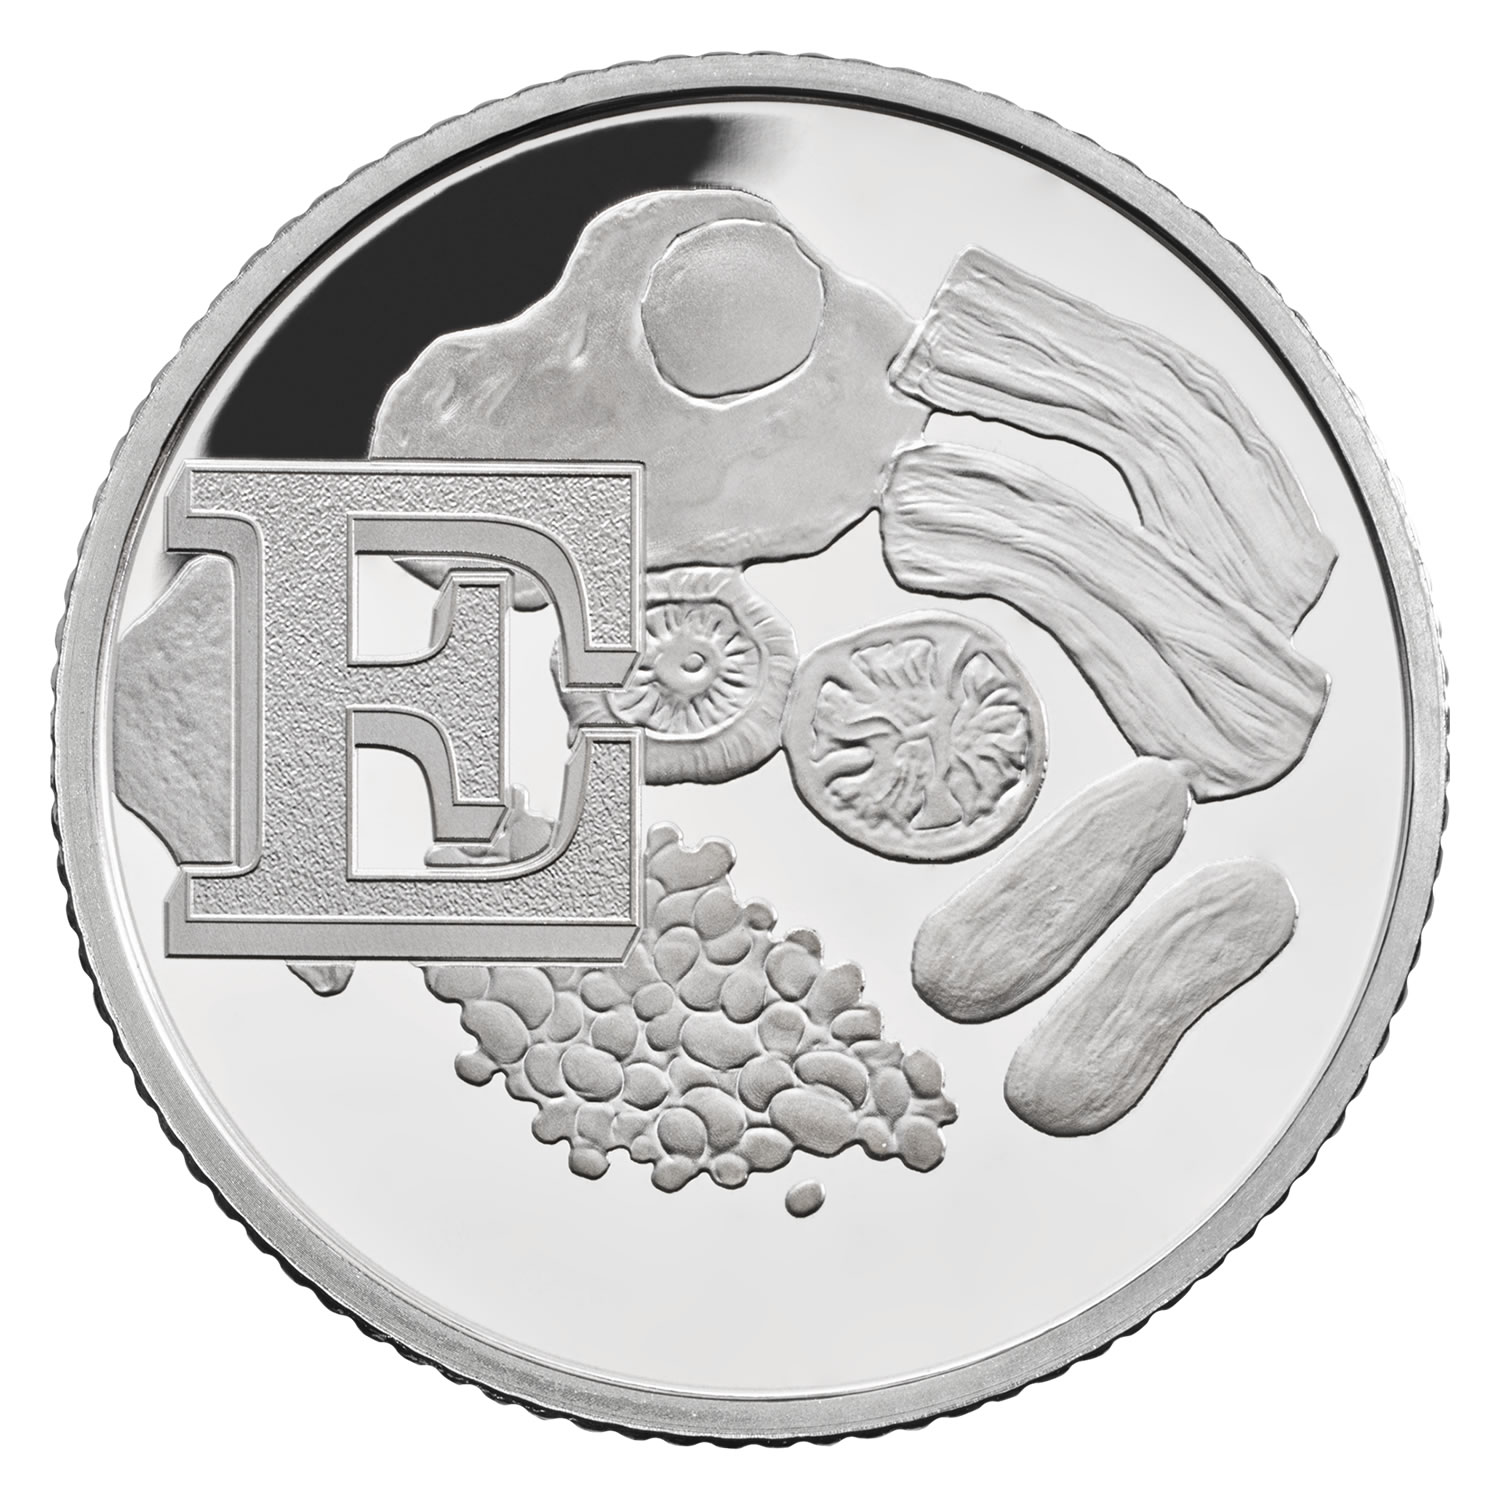 E - English Breakfast 2018 UK 10p Silver Proof Coin